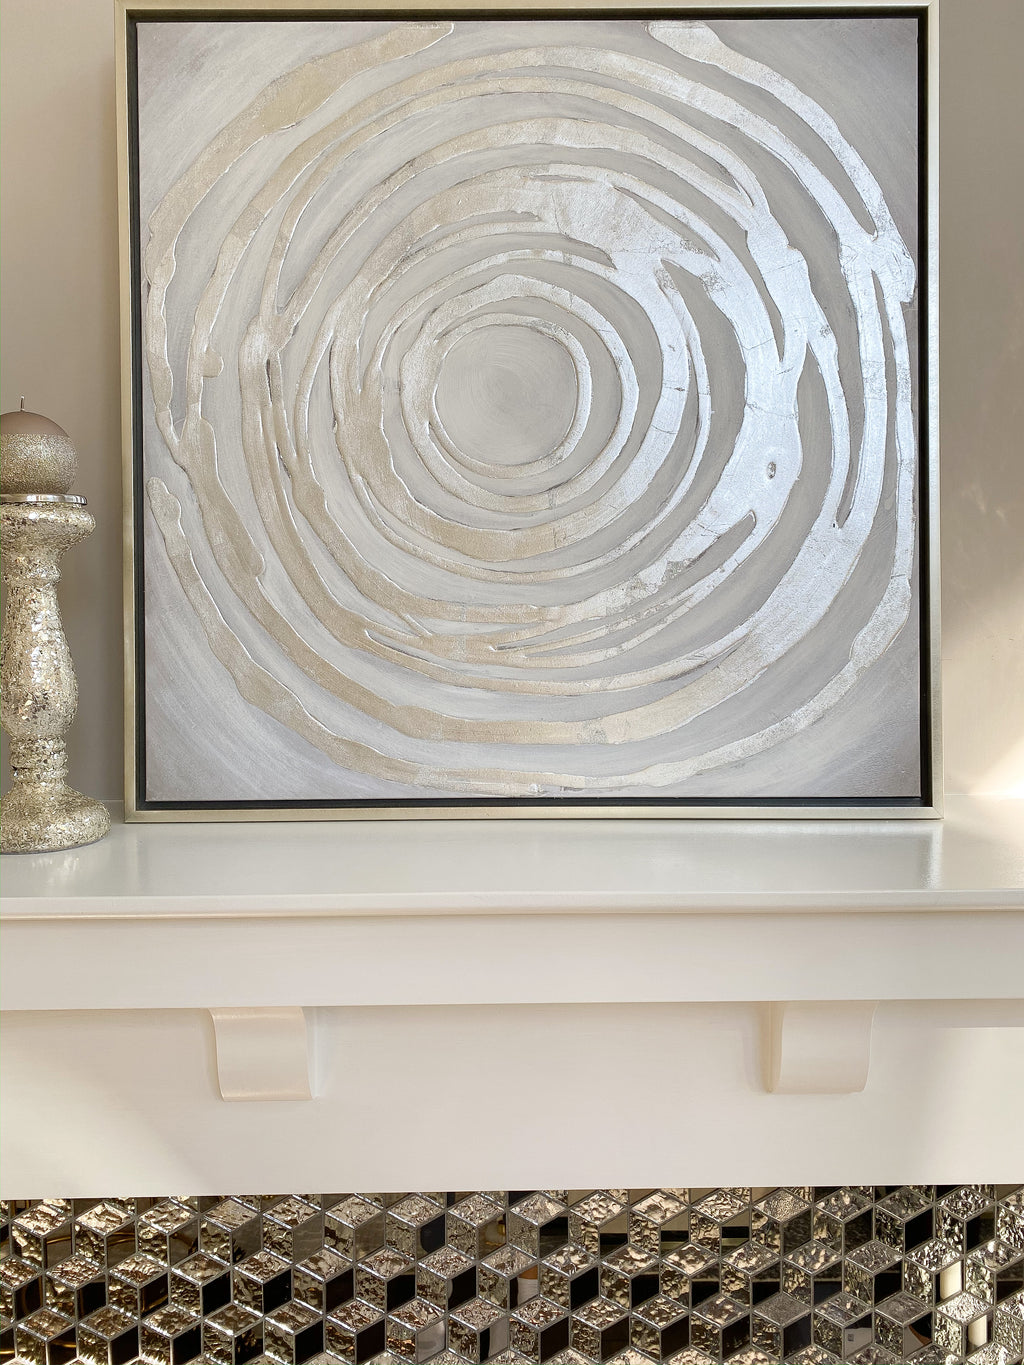 Metallic Silver Spiral Wall Art-Inspire Me! Home Decor